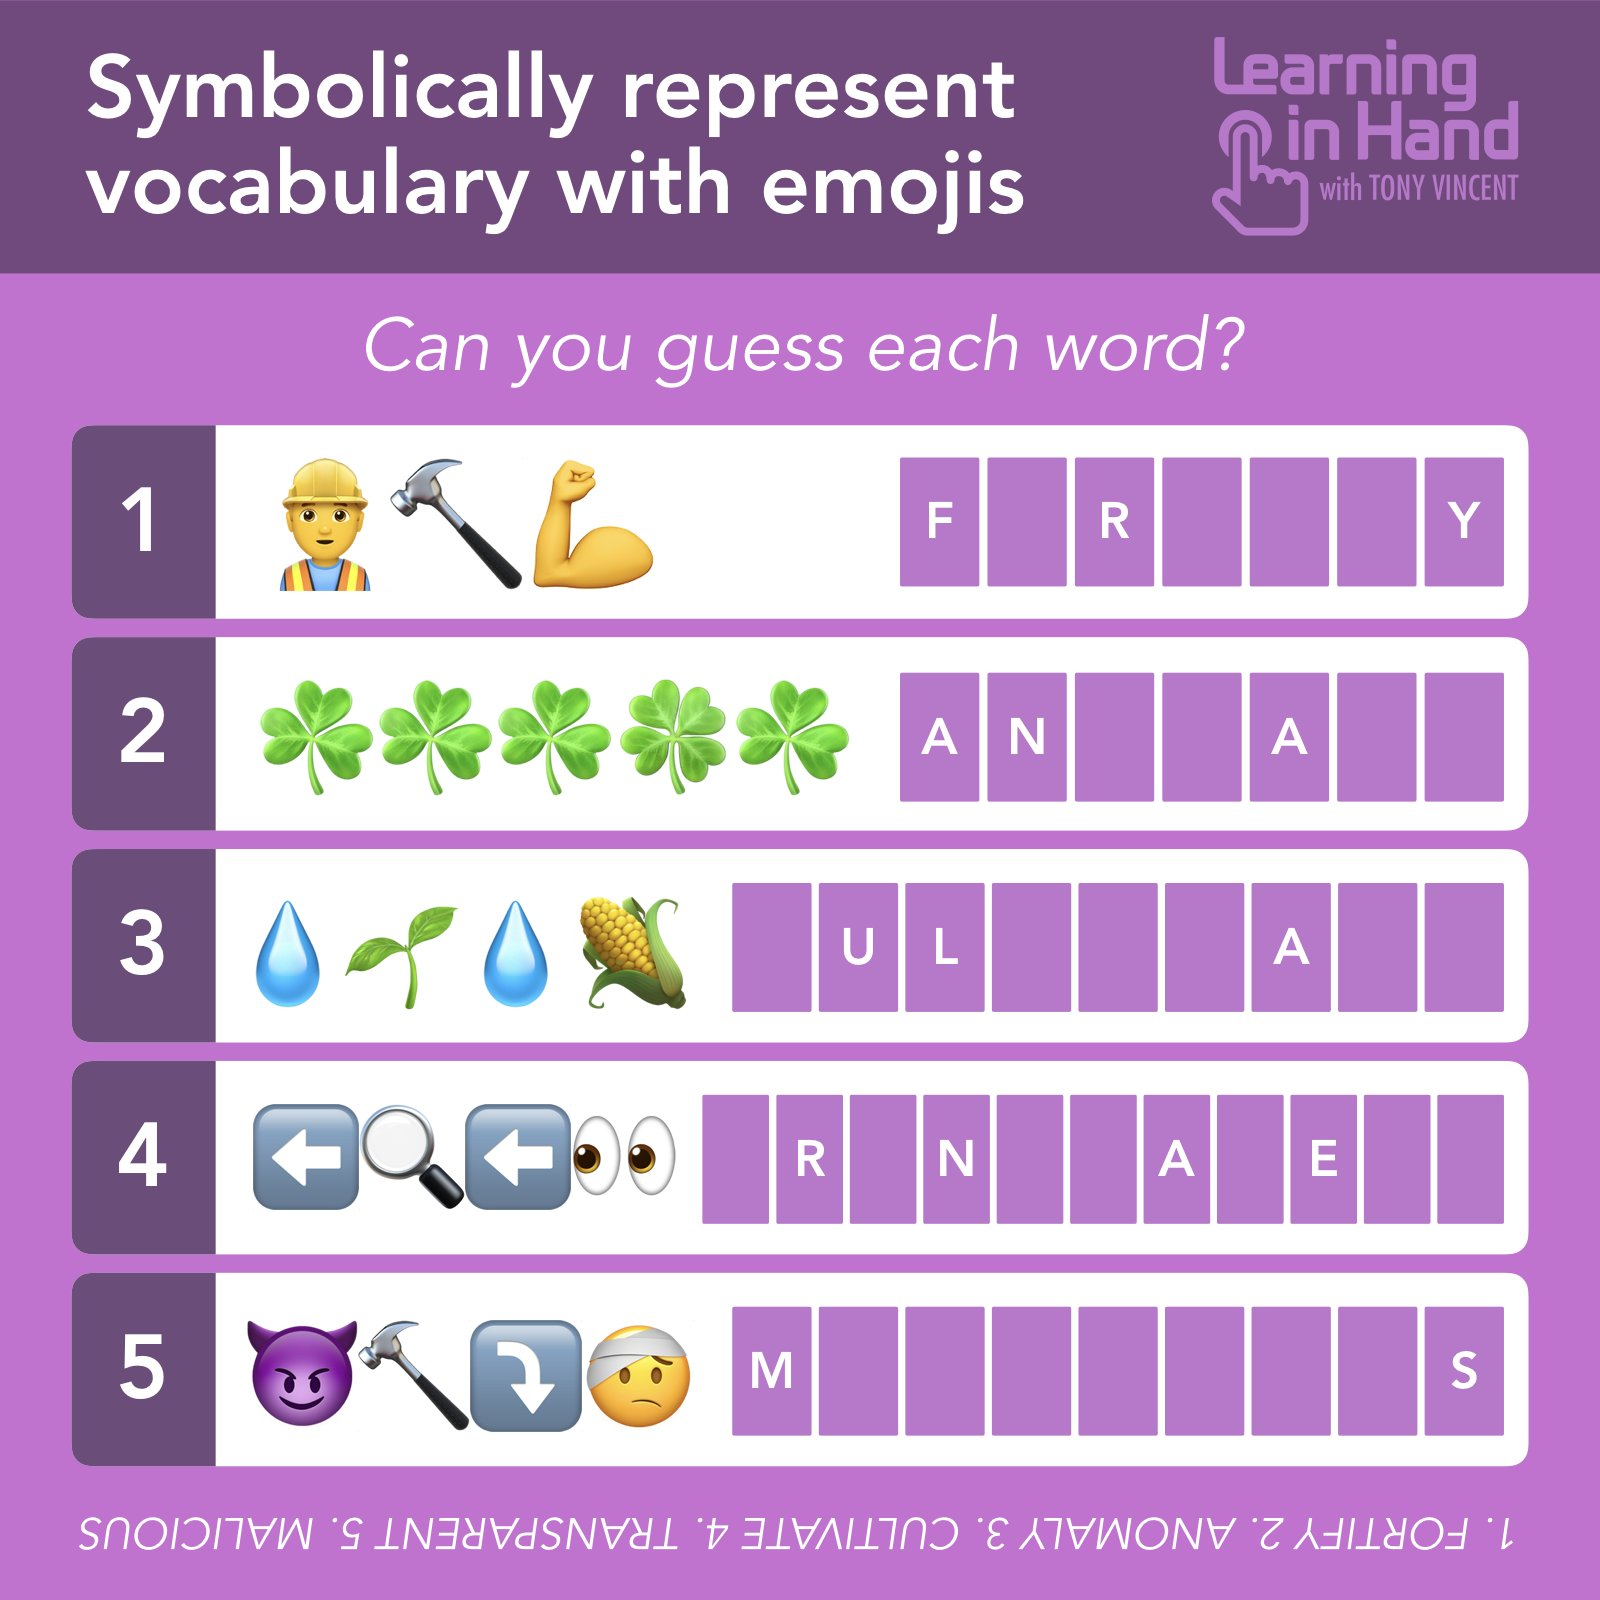 💥 There is not an emoji for everything, so symbolically representing vocabulary can be a stretch—a really big thinking stretch when you're the one developing the representation. https://t.co/NrIRIfXmvq